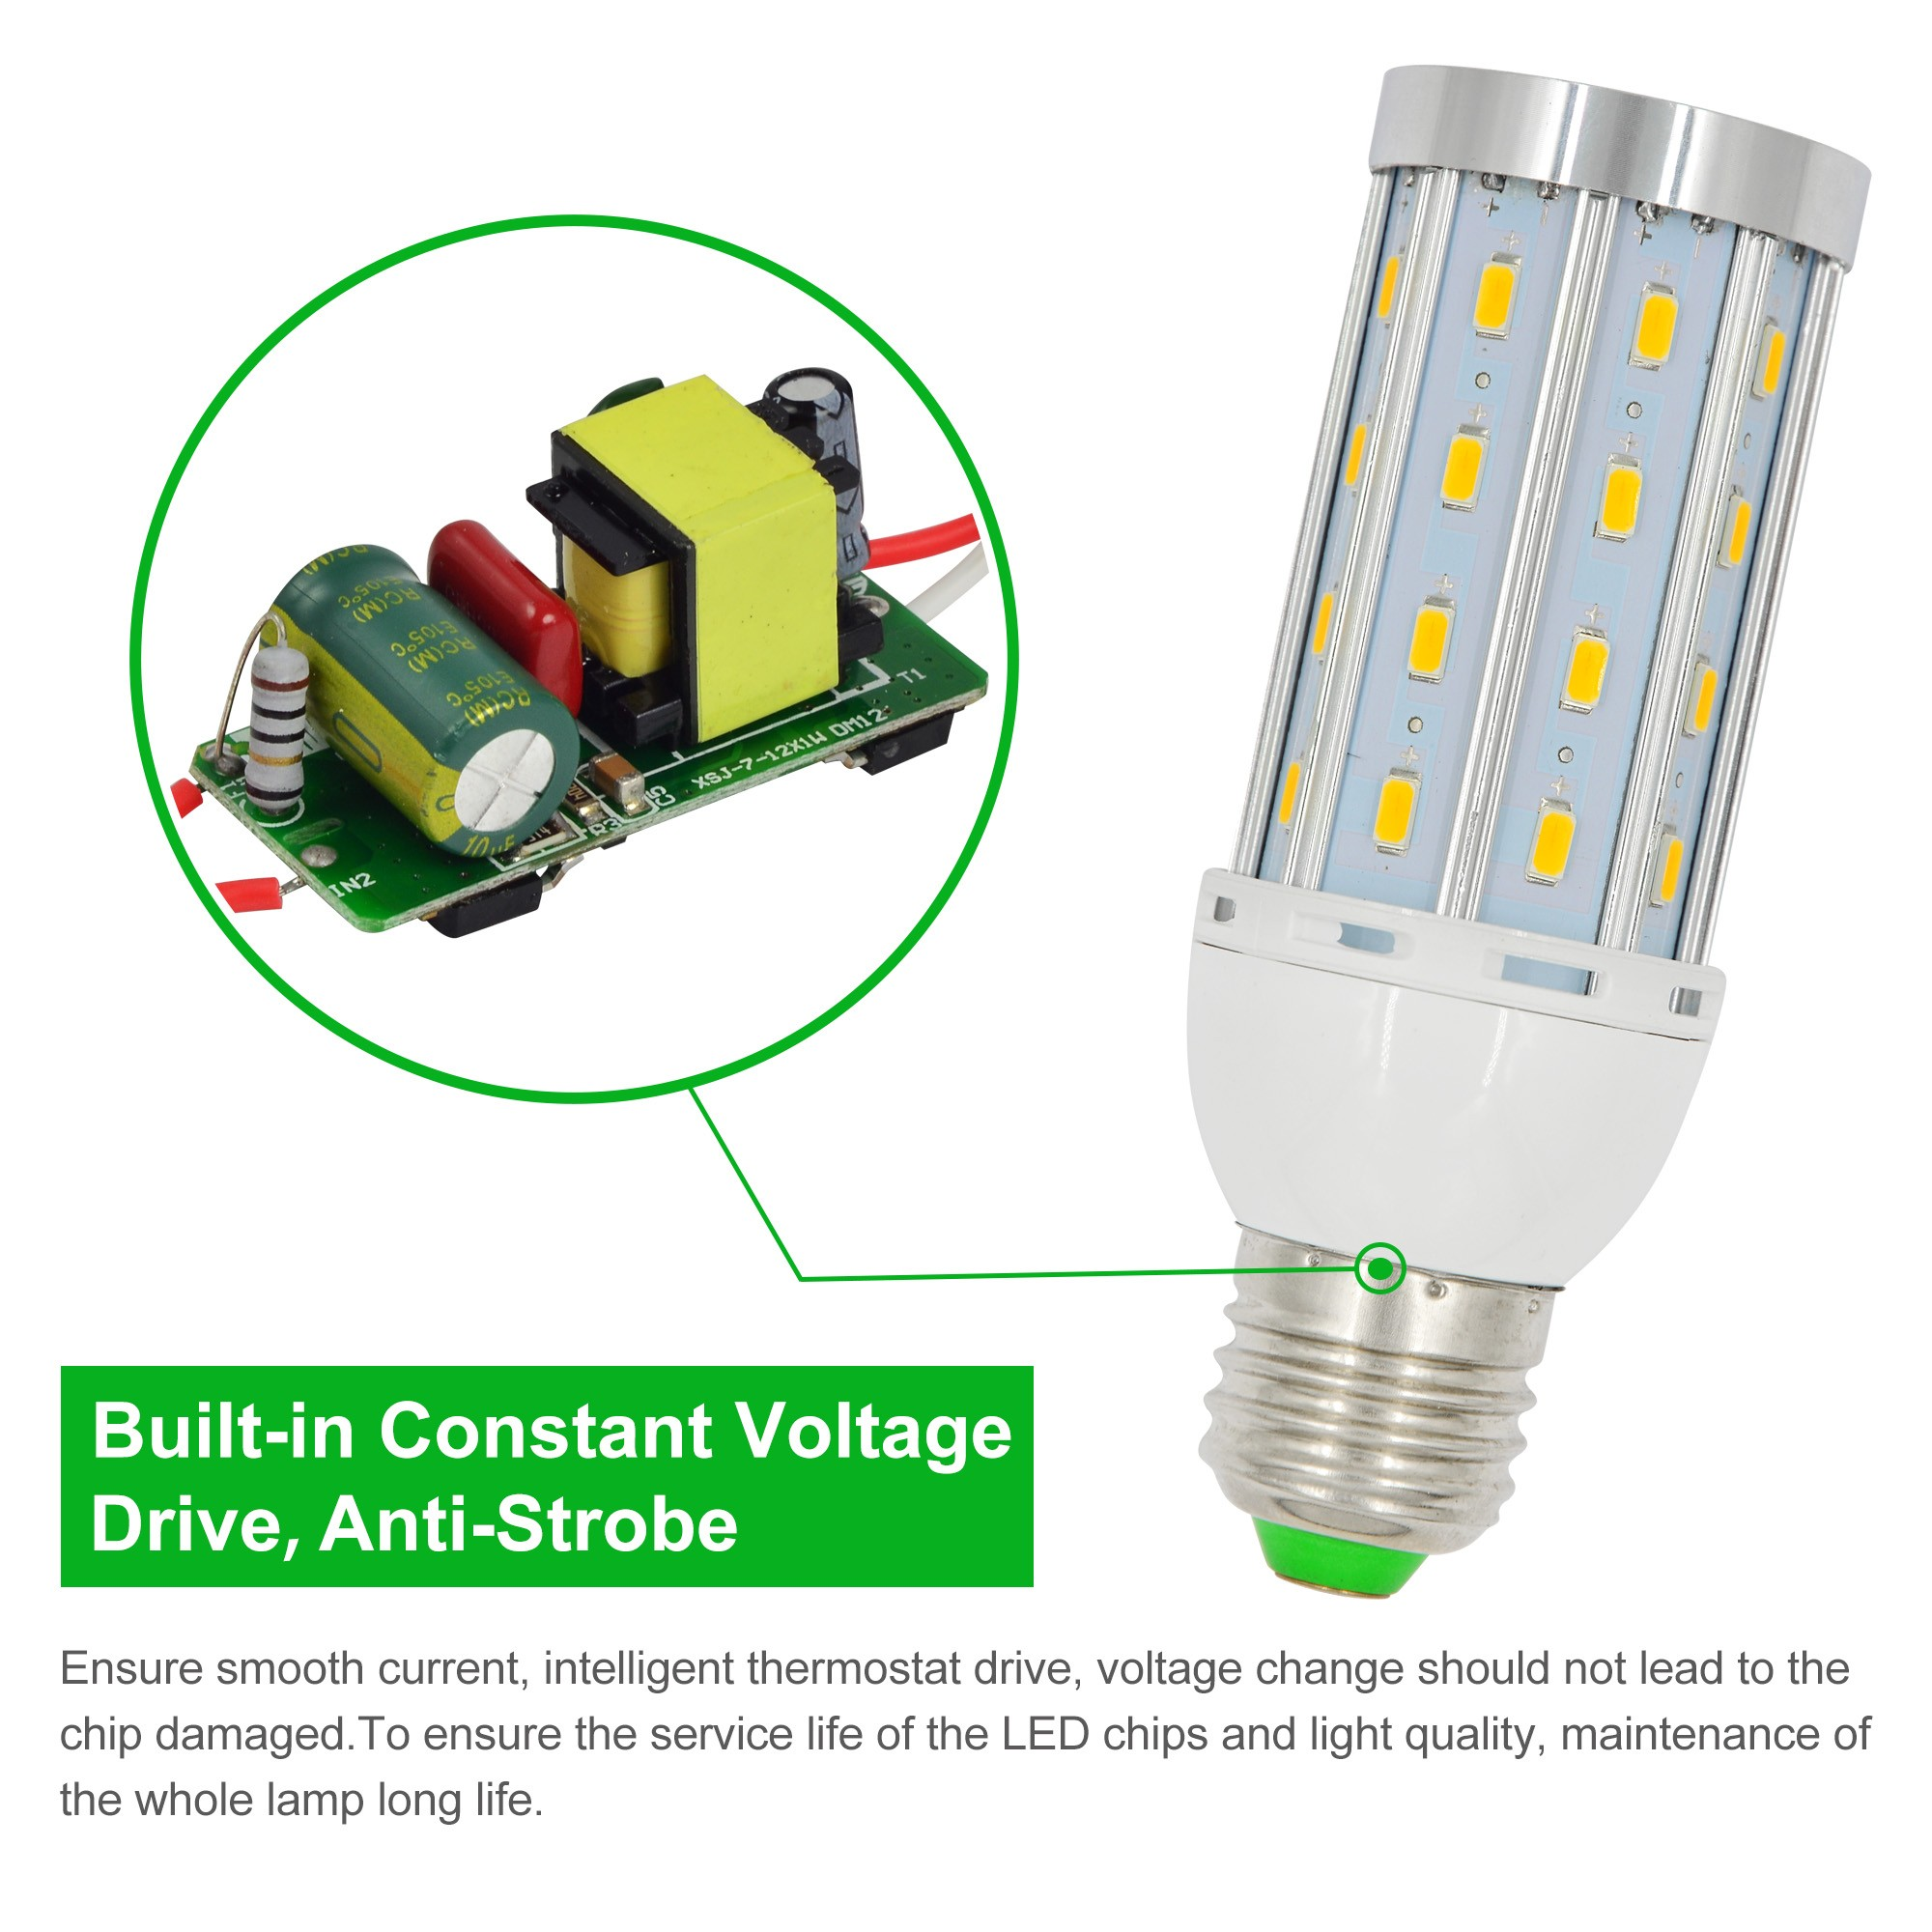 33 Great Led Lamp Circuit Diagram Good A Typical Schematic For Flasher Electronic Circuits And Diagramelectronics Mengs E W Dimmable Corn Light X Smd Bulb With Aluminum Plate Ac V In Warm Whitecool White